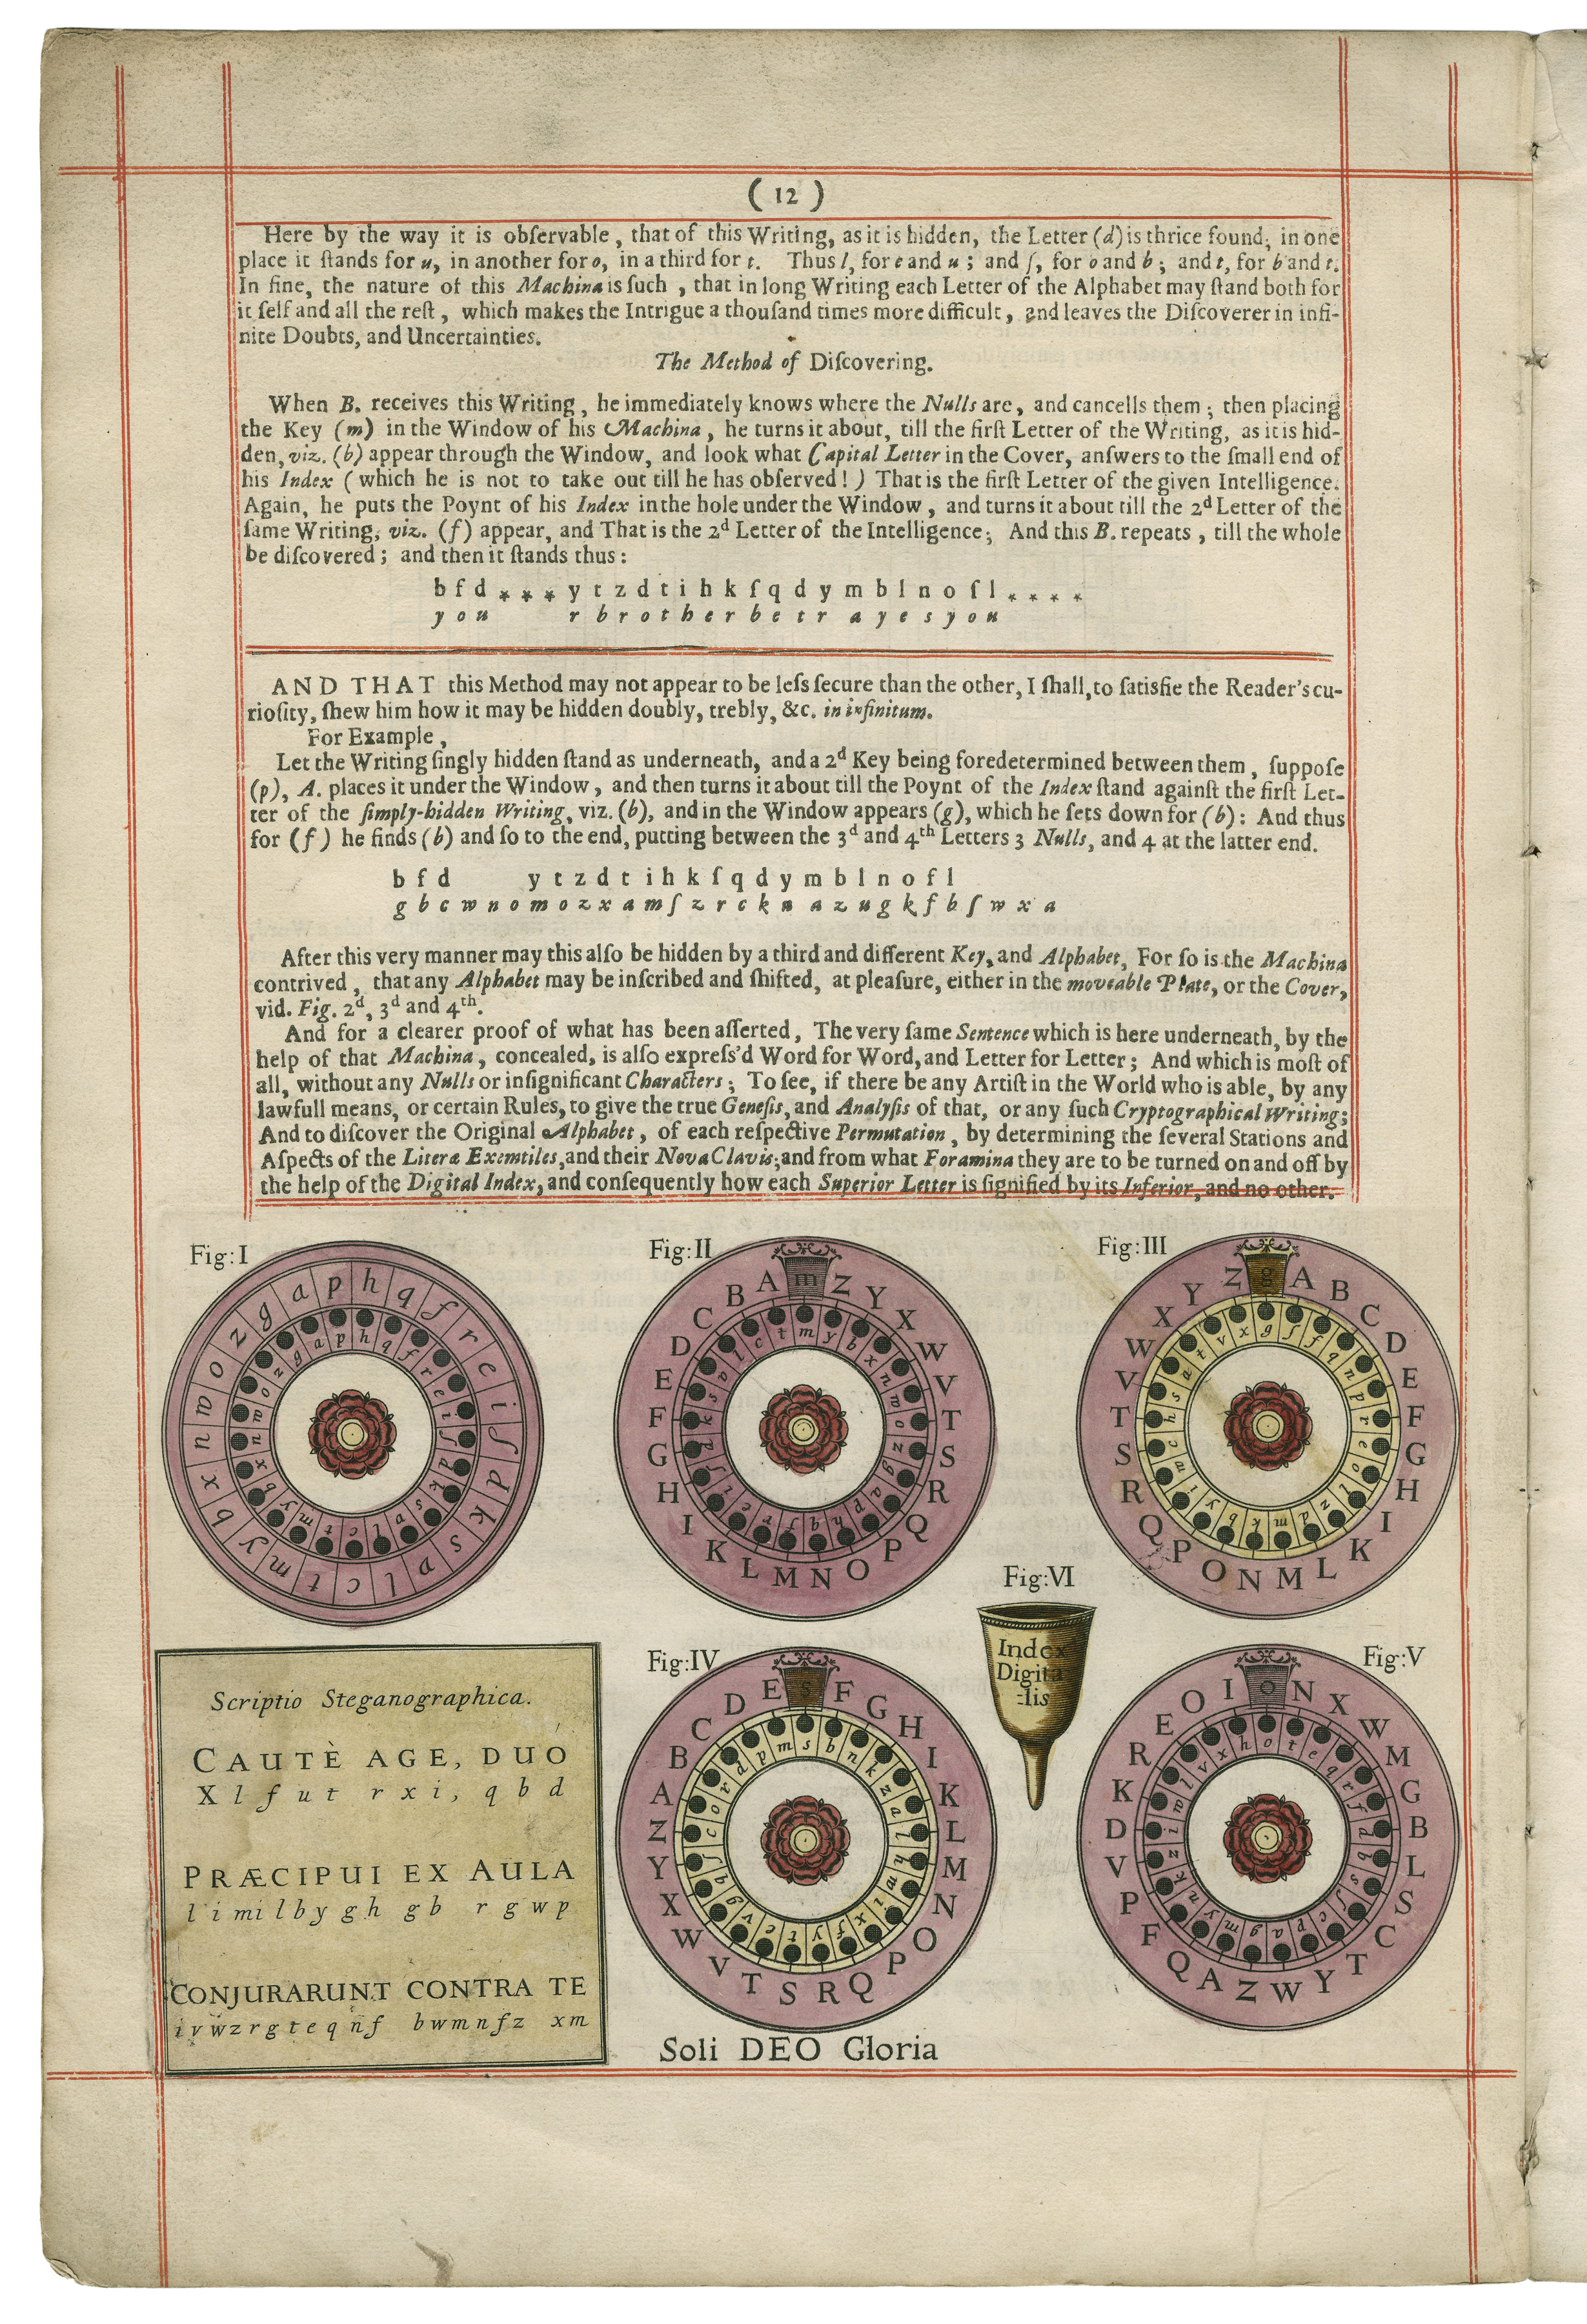 Johannes Trithemius. Polygraphie et universelle escriture caba. Folger Shakespeare Library.